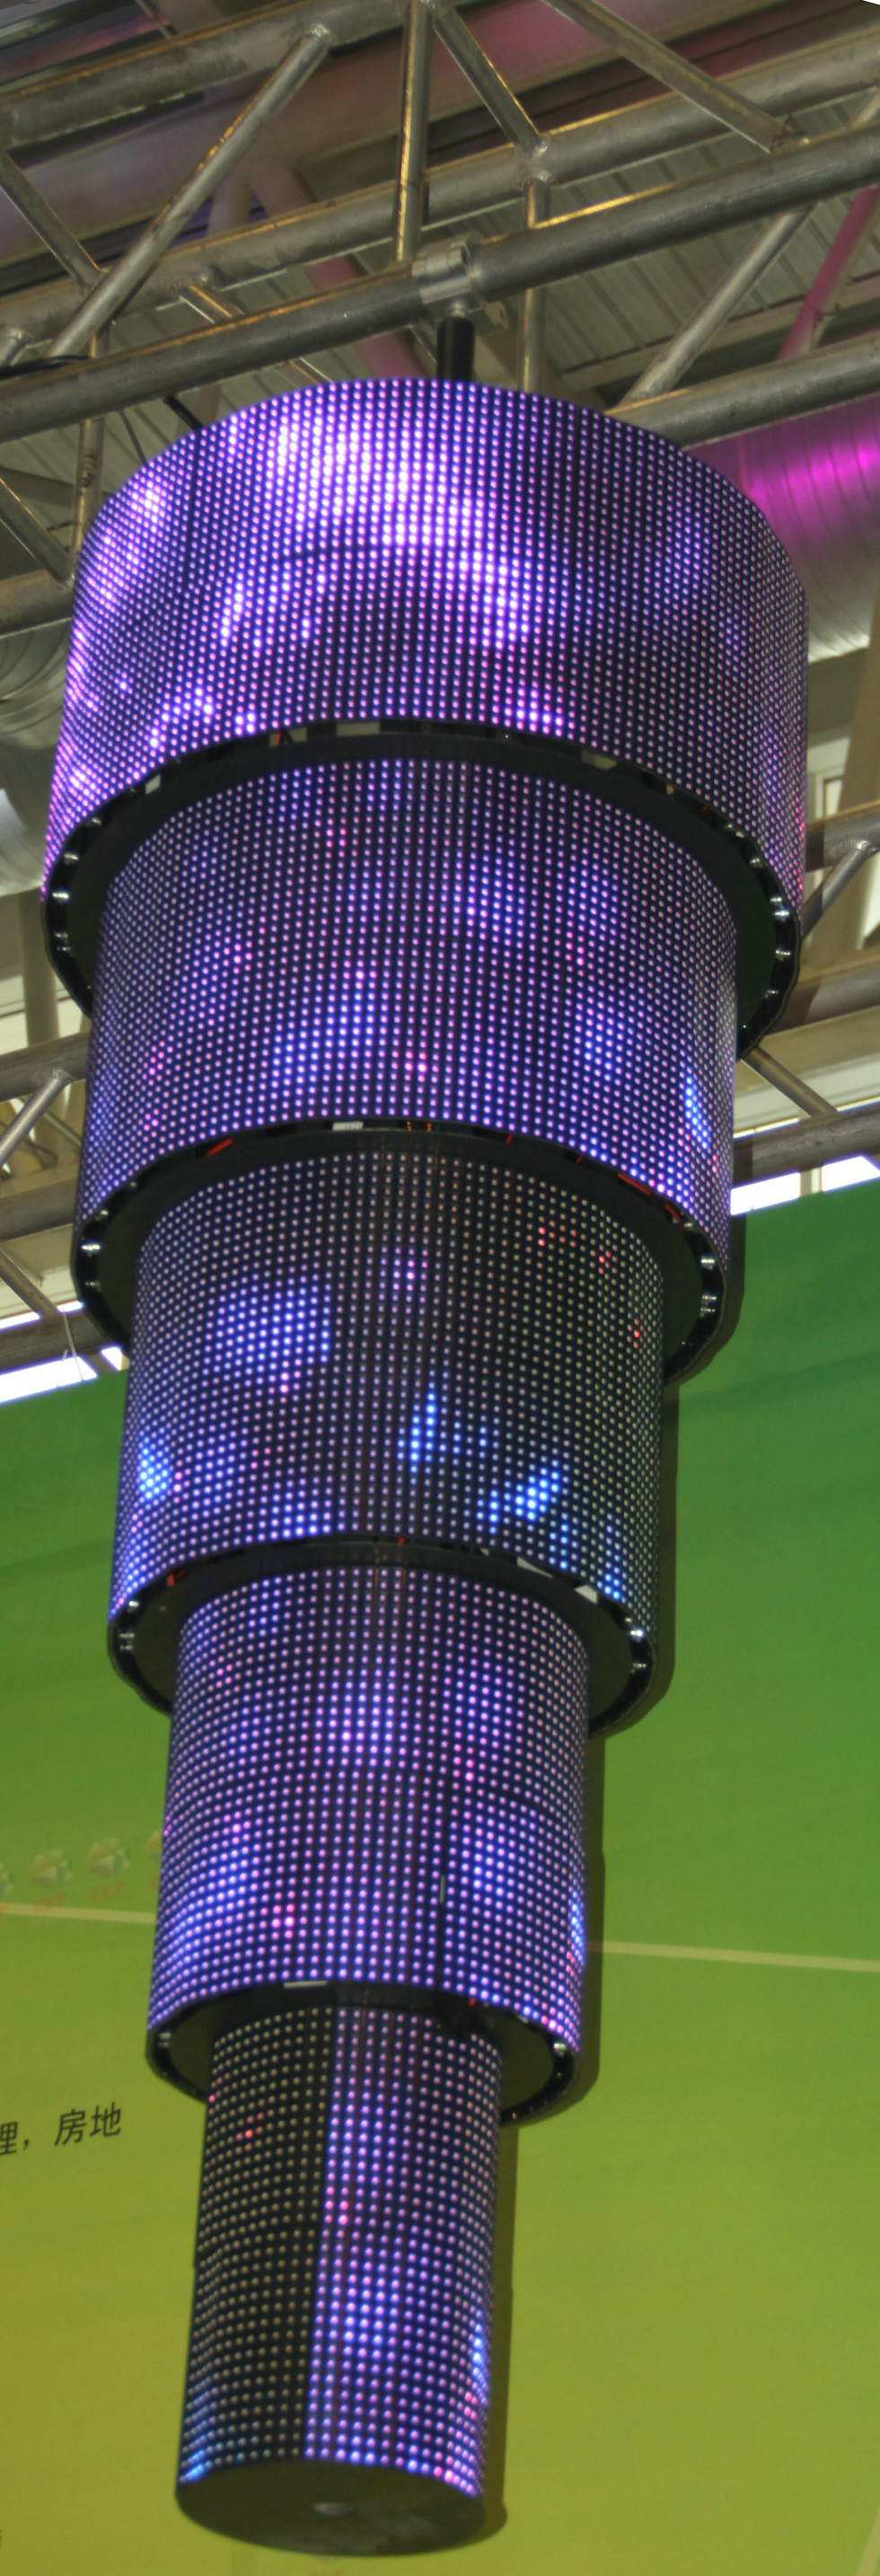 Flexible LED Display screen